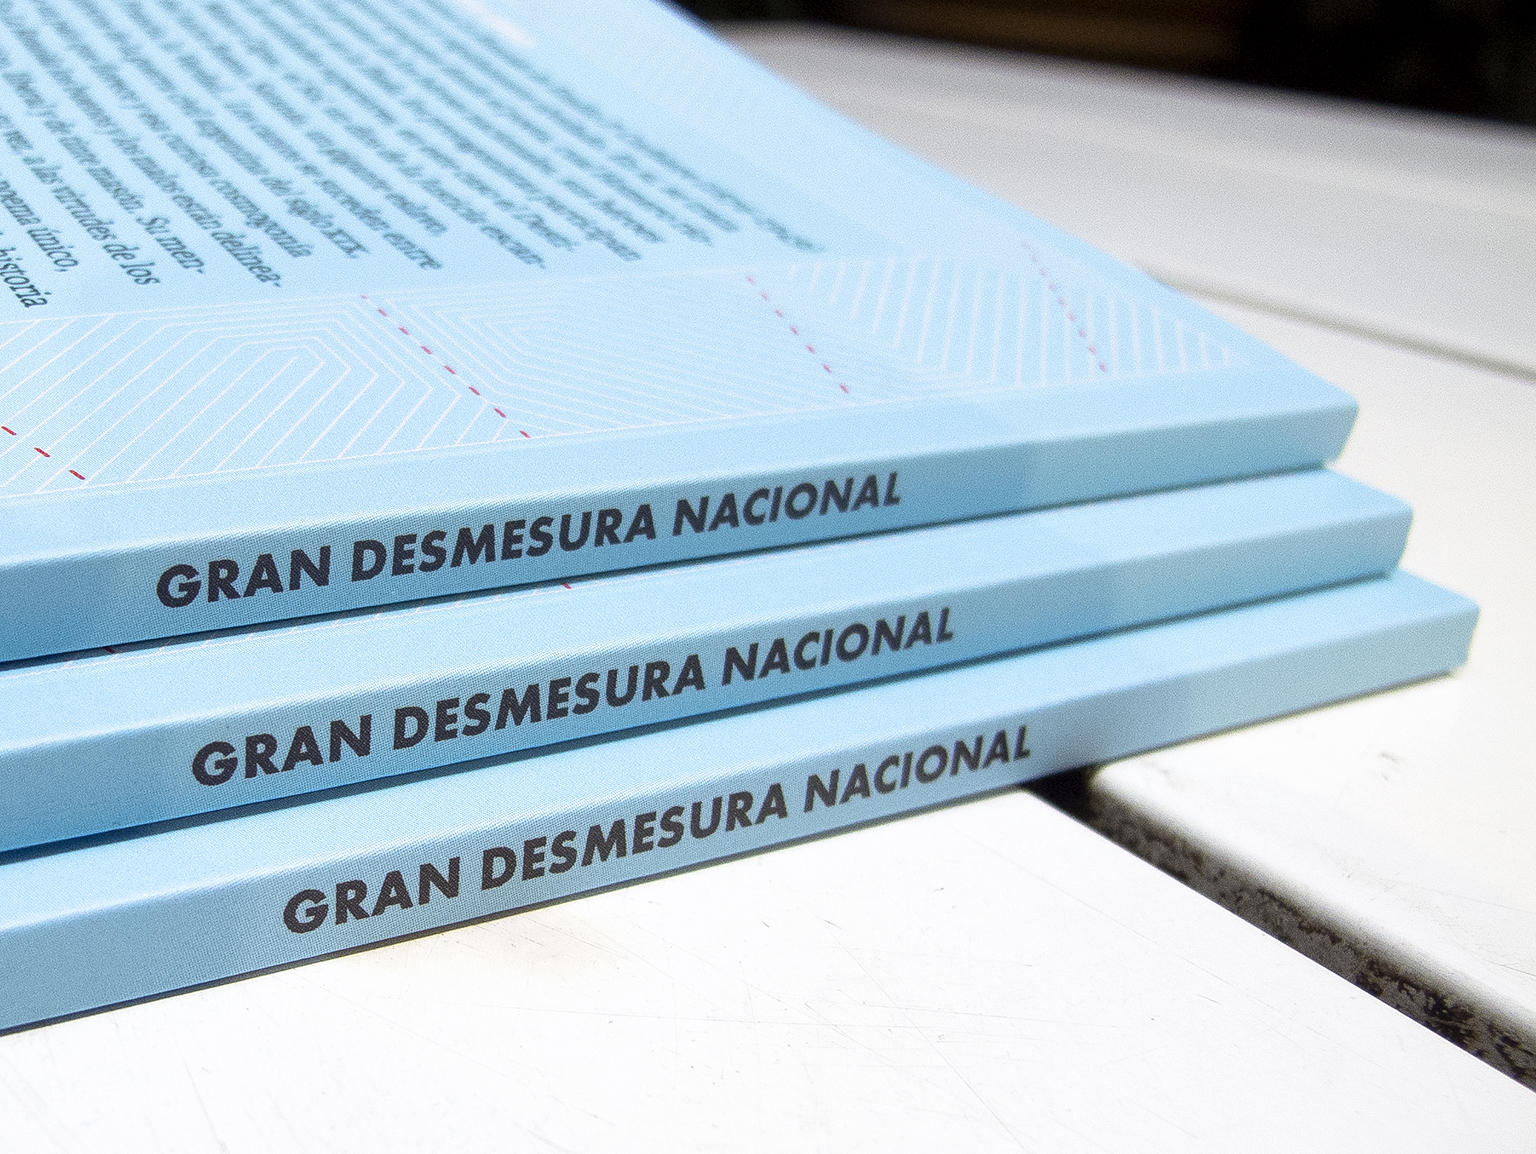 Gran Desmesura Nacional is an essay by Vicente Mario di Maggio on the poem La Rozaida by Emilio P. Corbiere